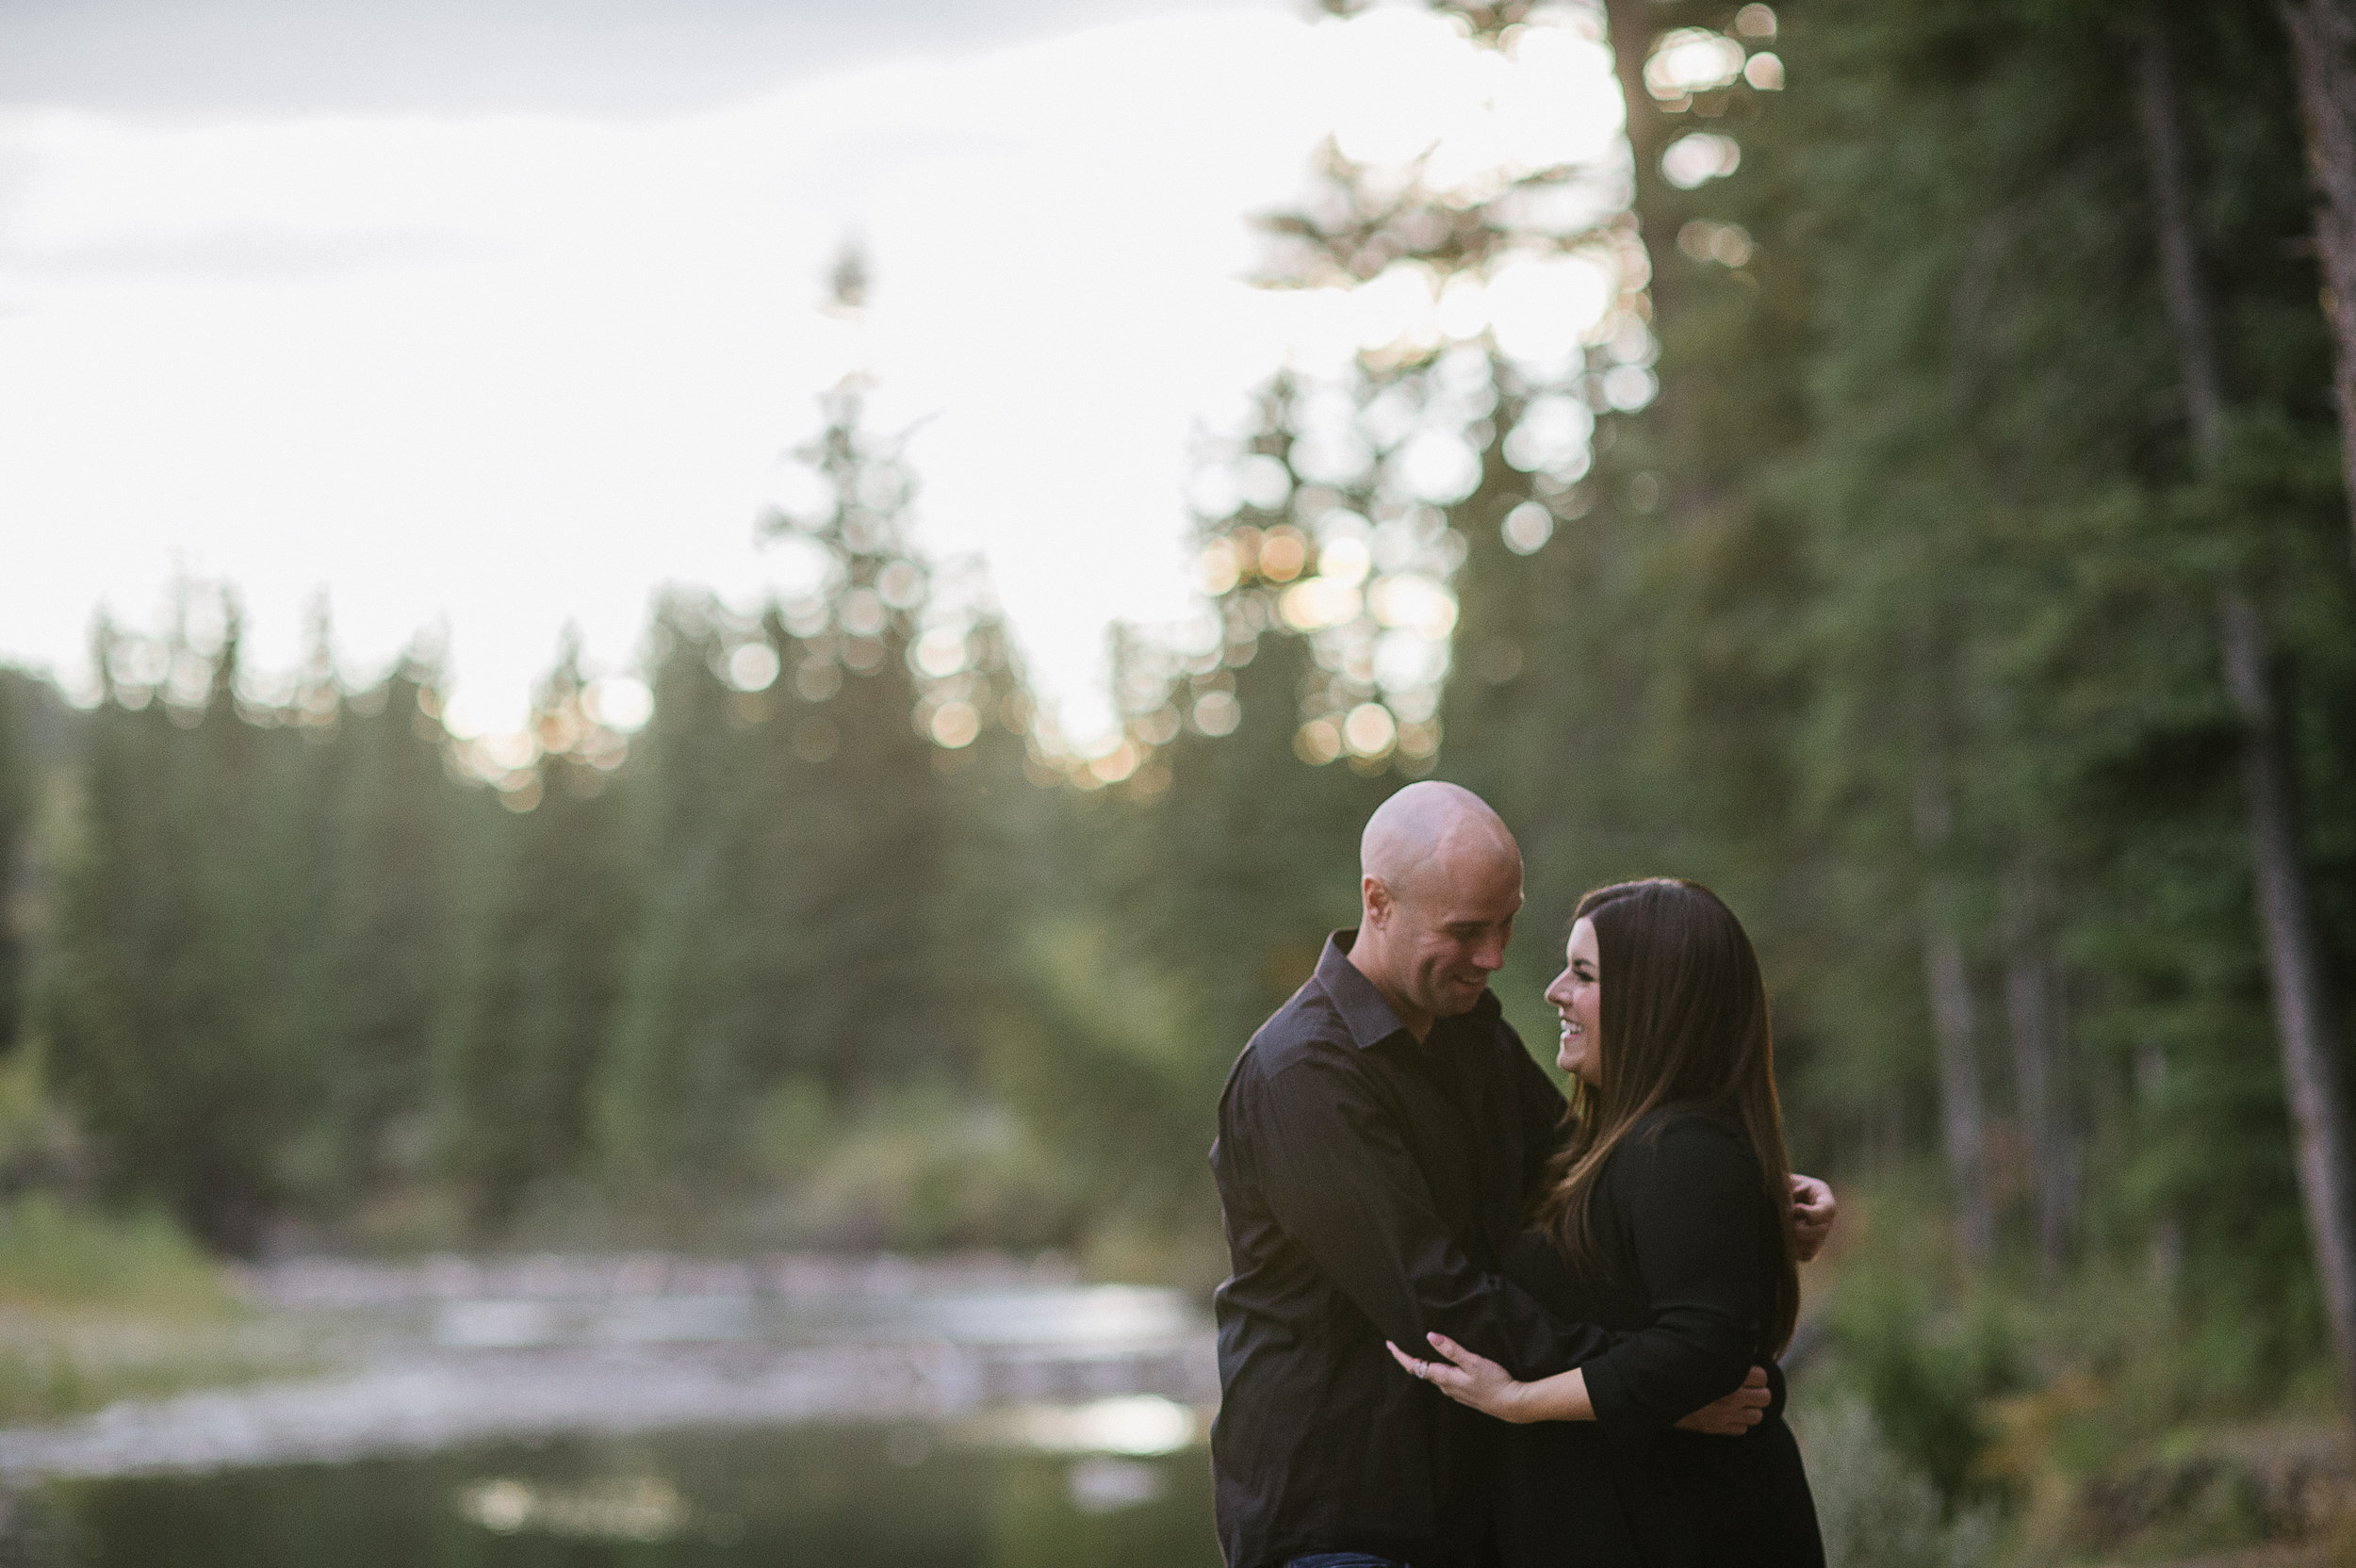 Calgary_Wedding_Photography_Cassandra_Derek_Engagements_2017_HR 0048.jpg